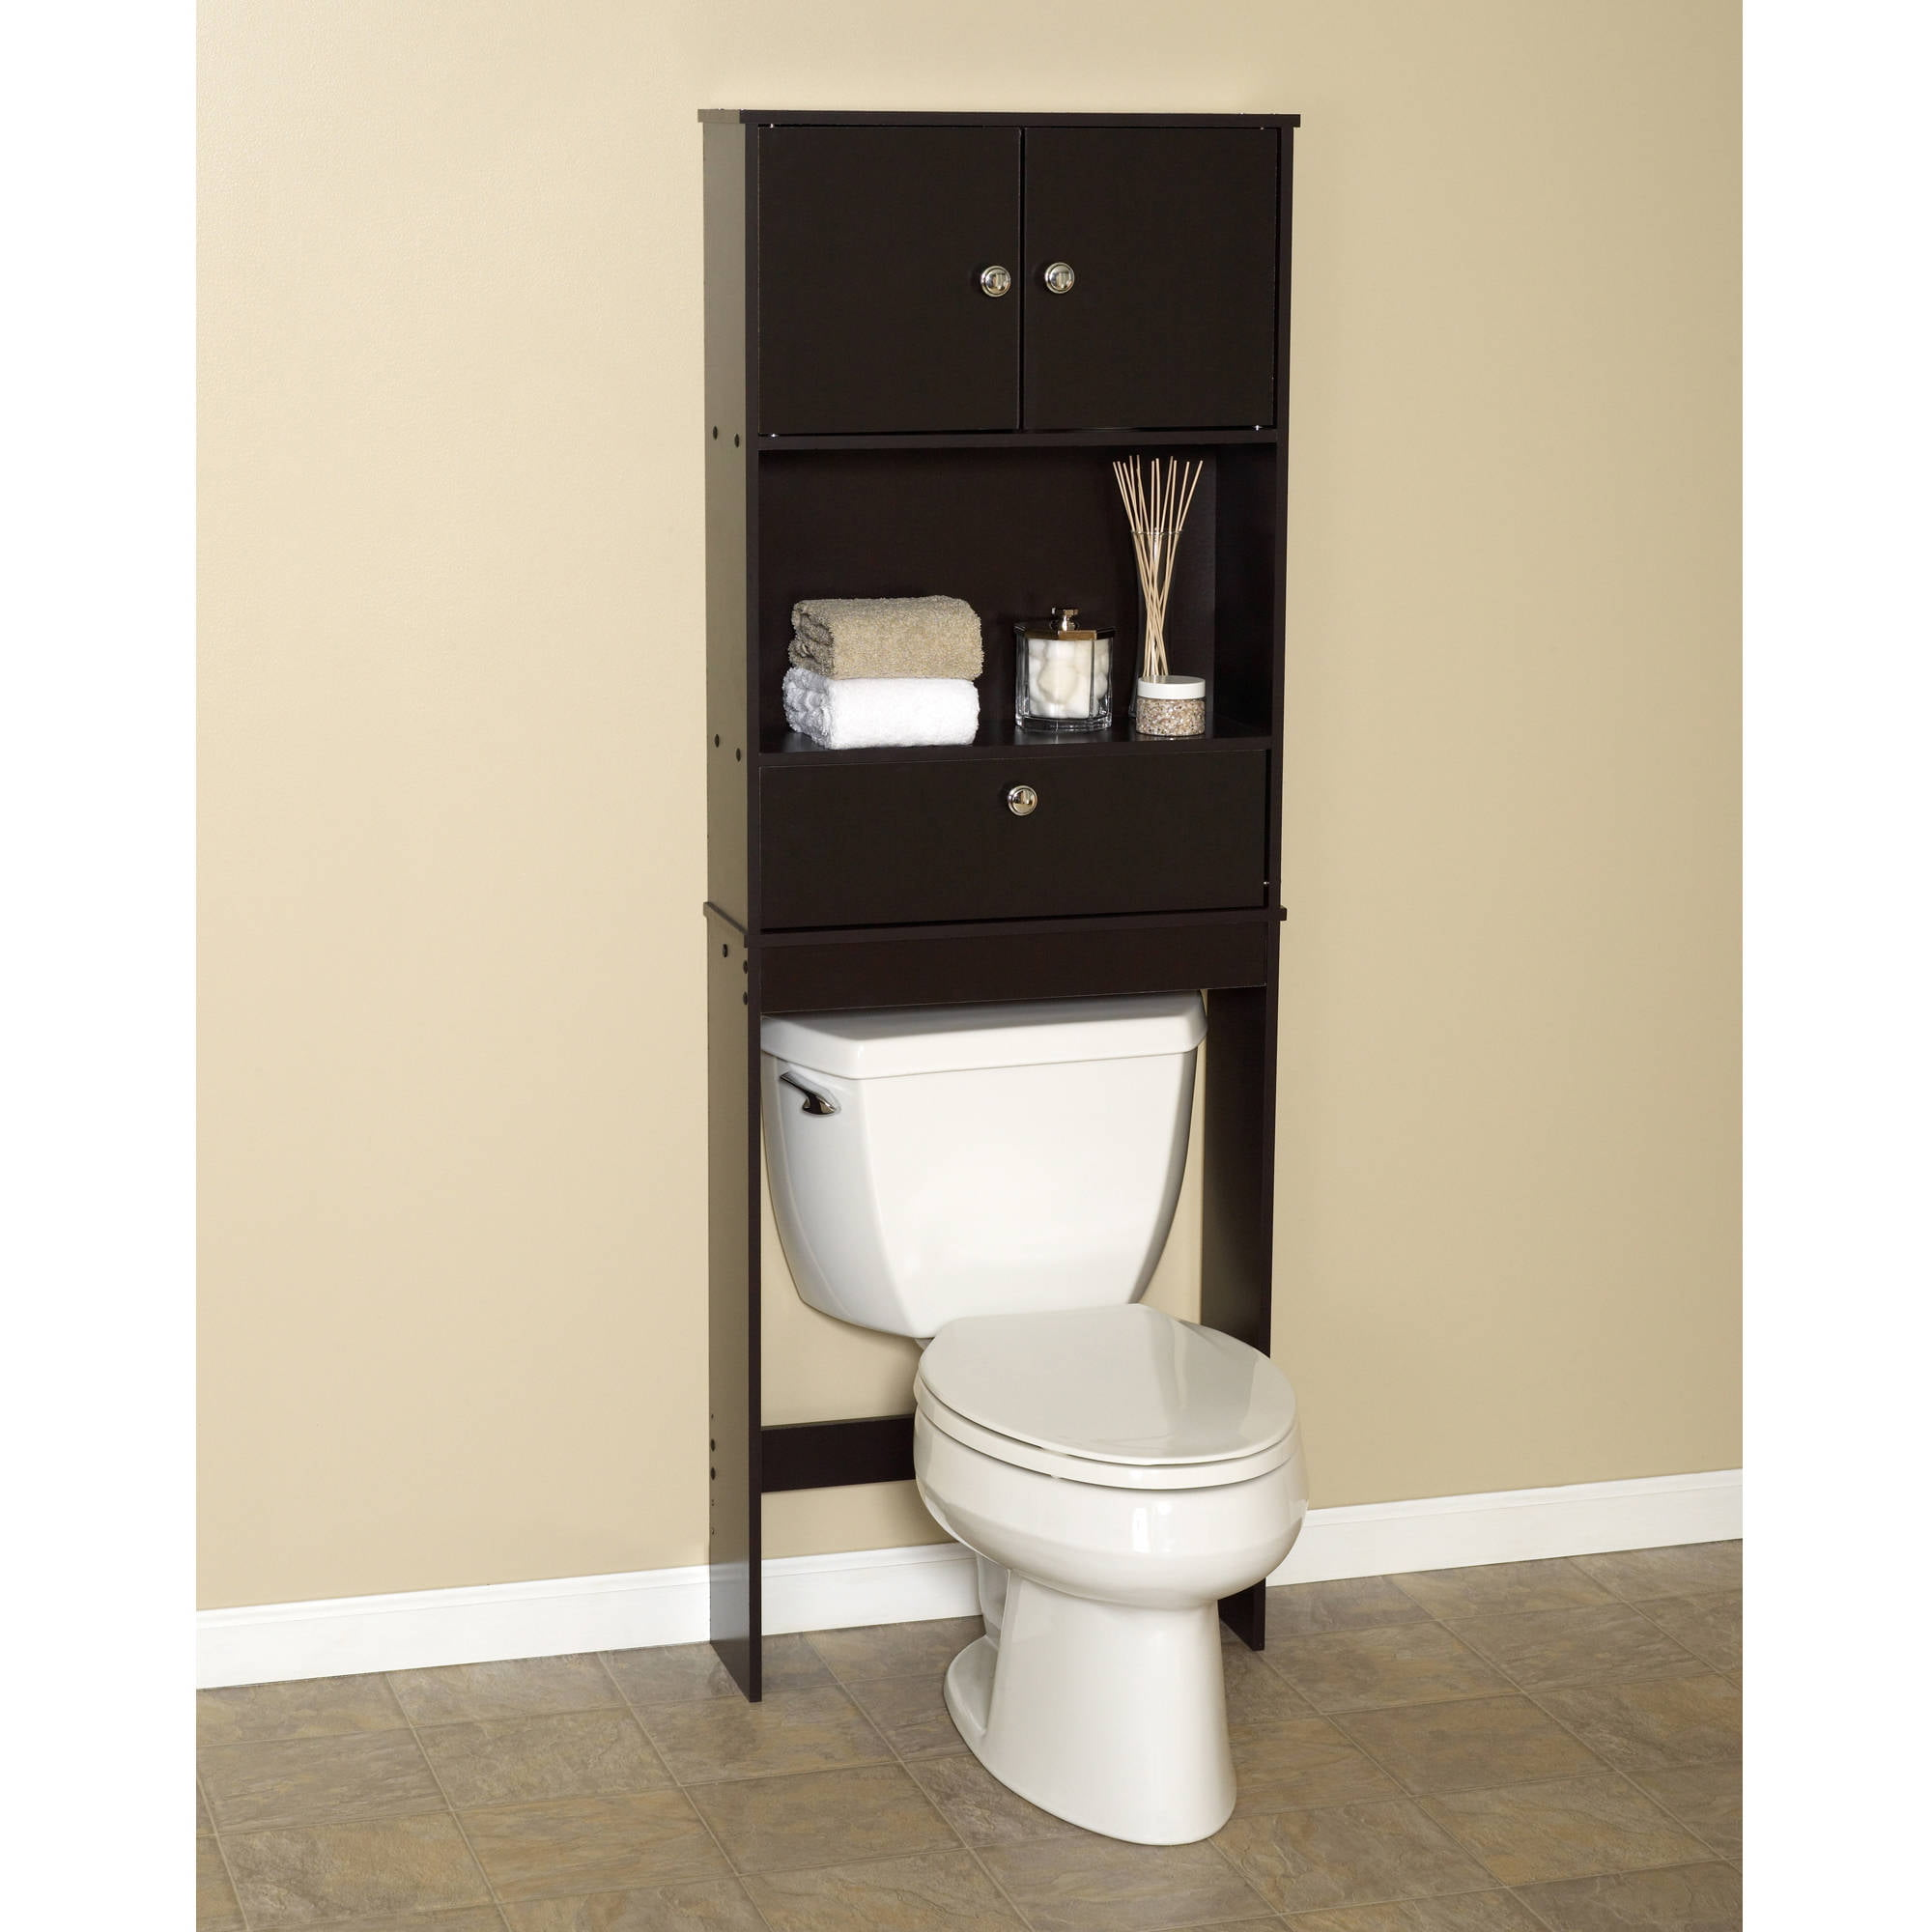 Zenna Home Drop Door Bathroom Spacesaver with 2-Door Cabinet ...